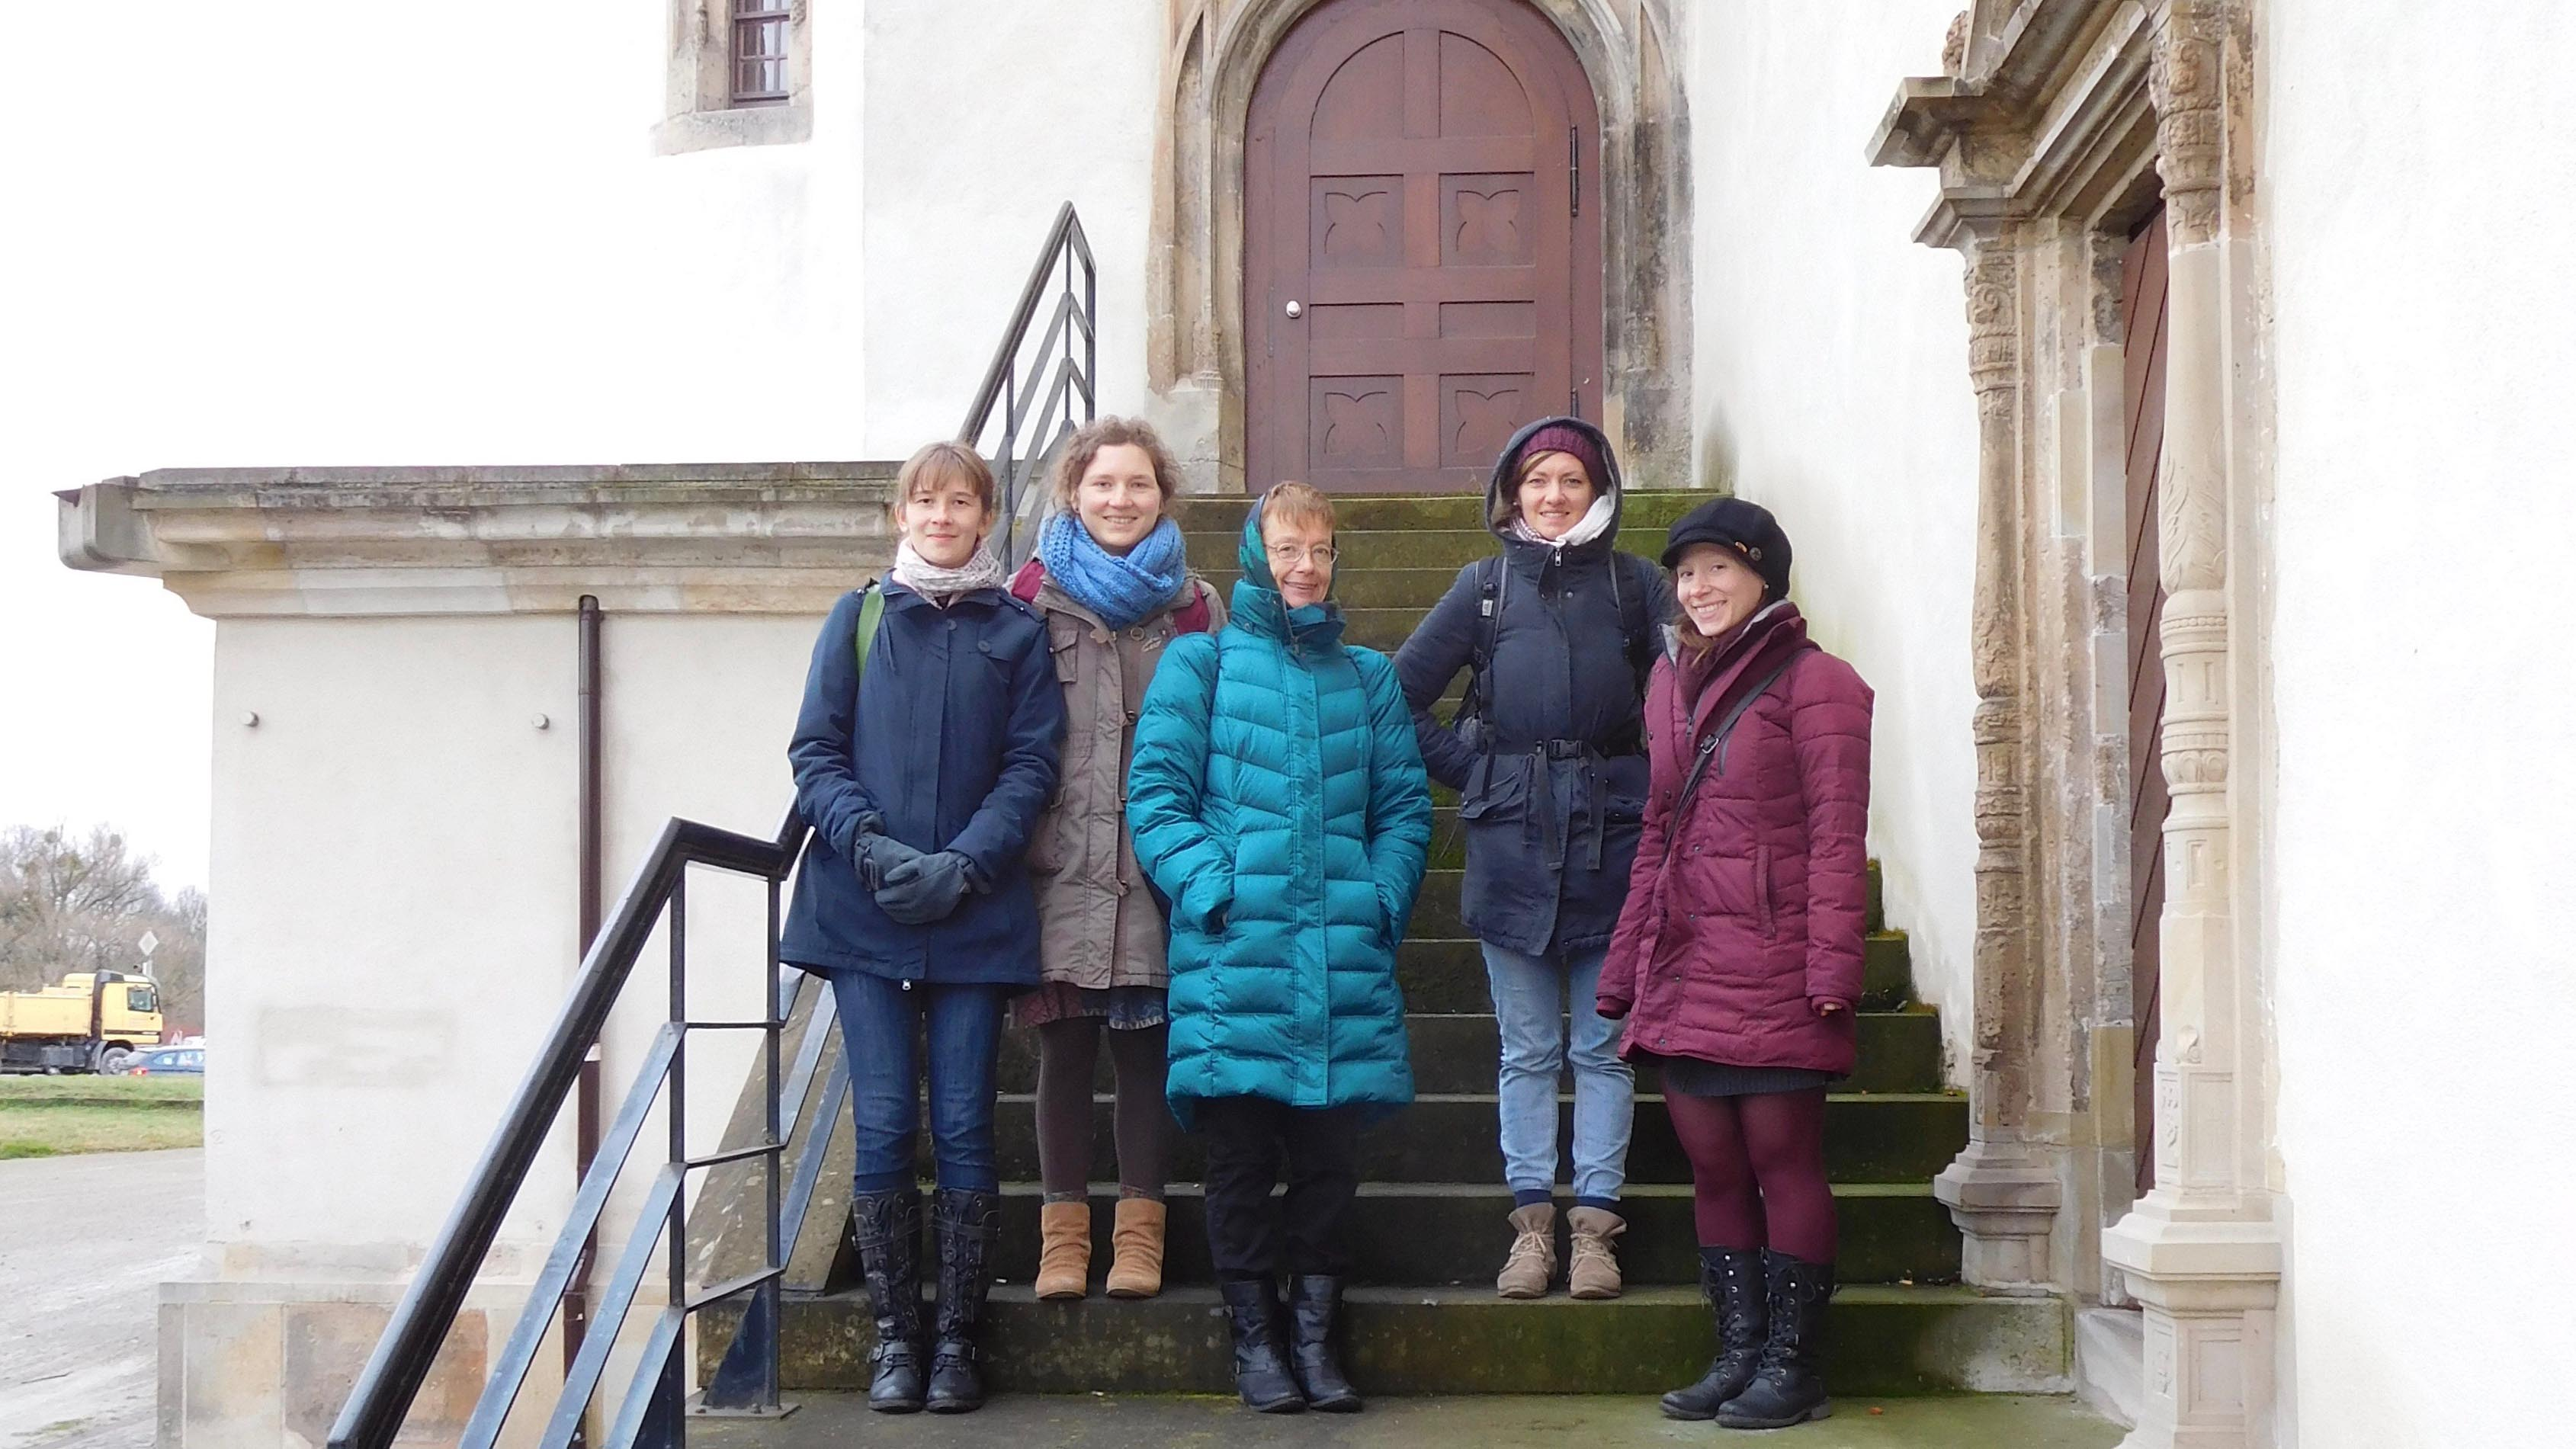 Dr. Austra Reinis with students in Dessau, Germany.